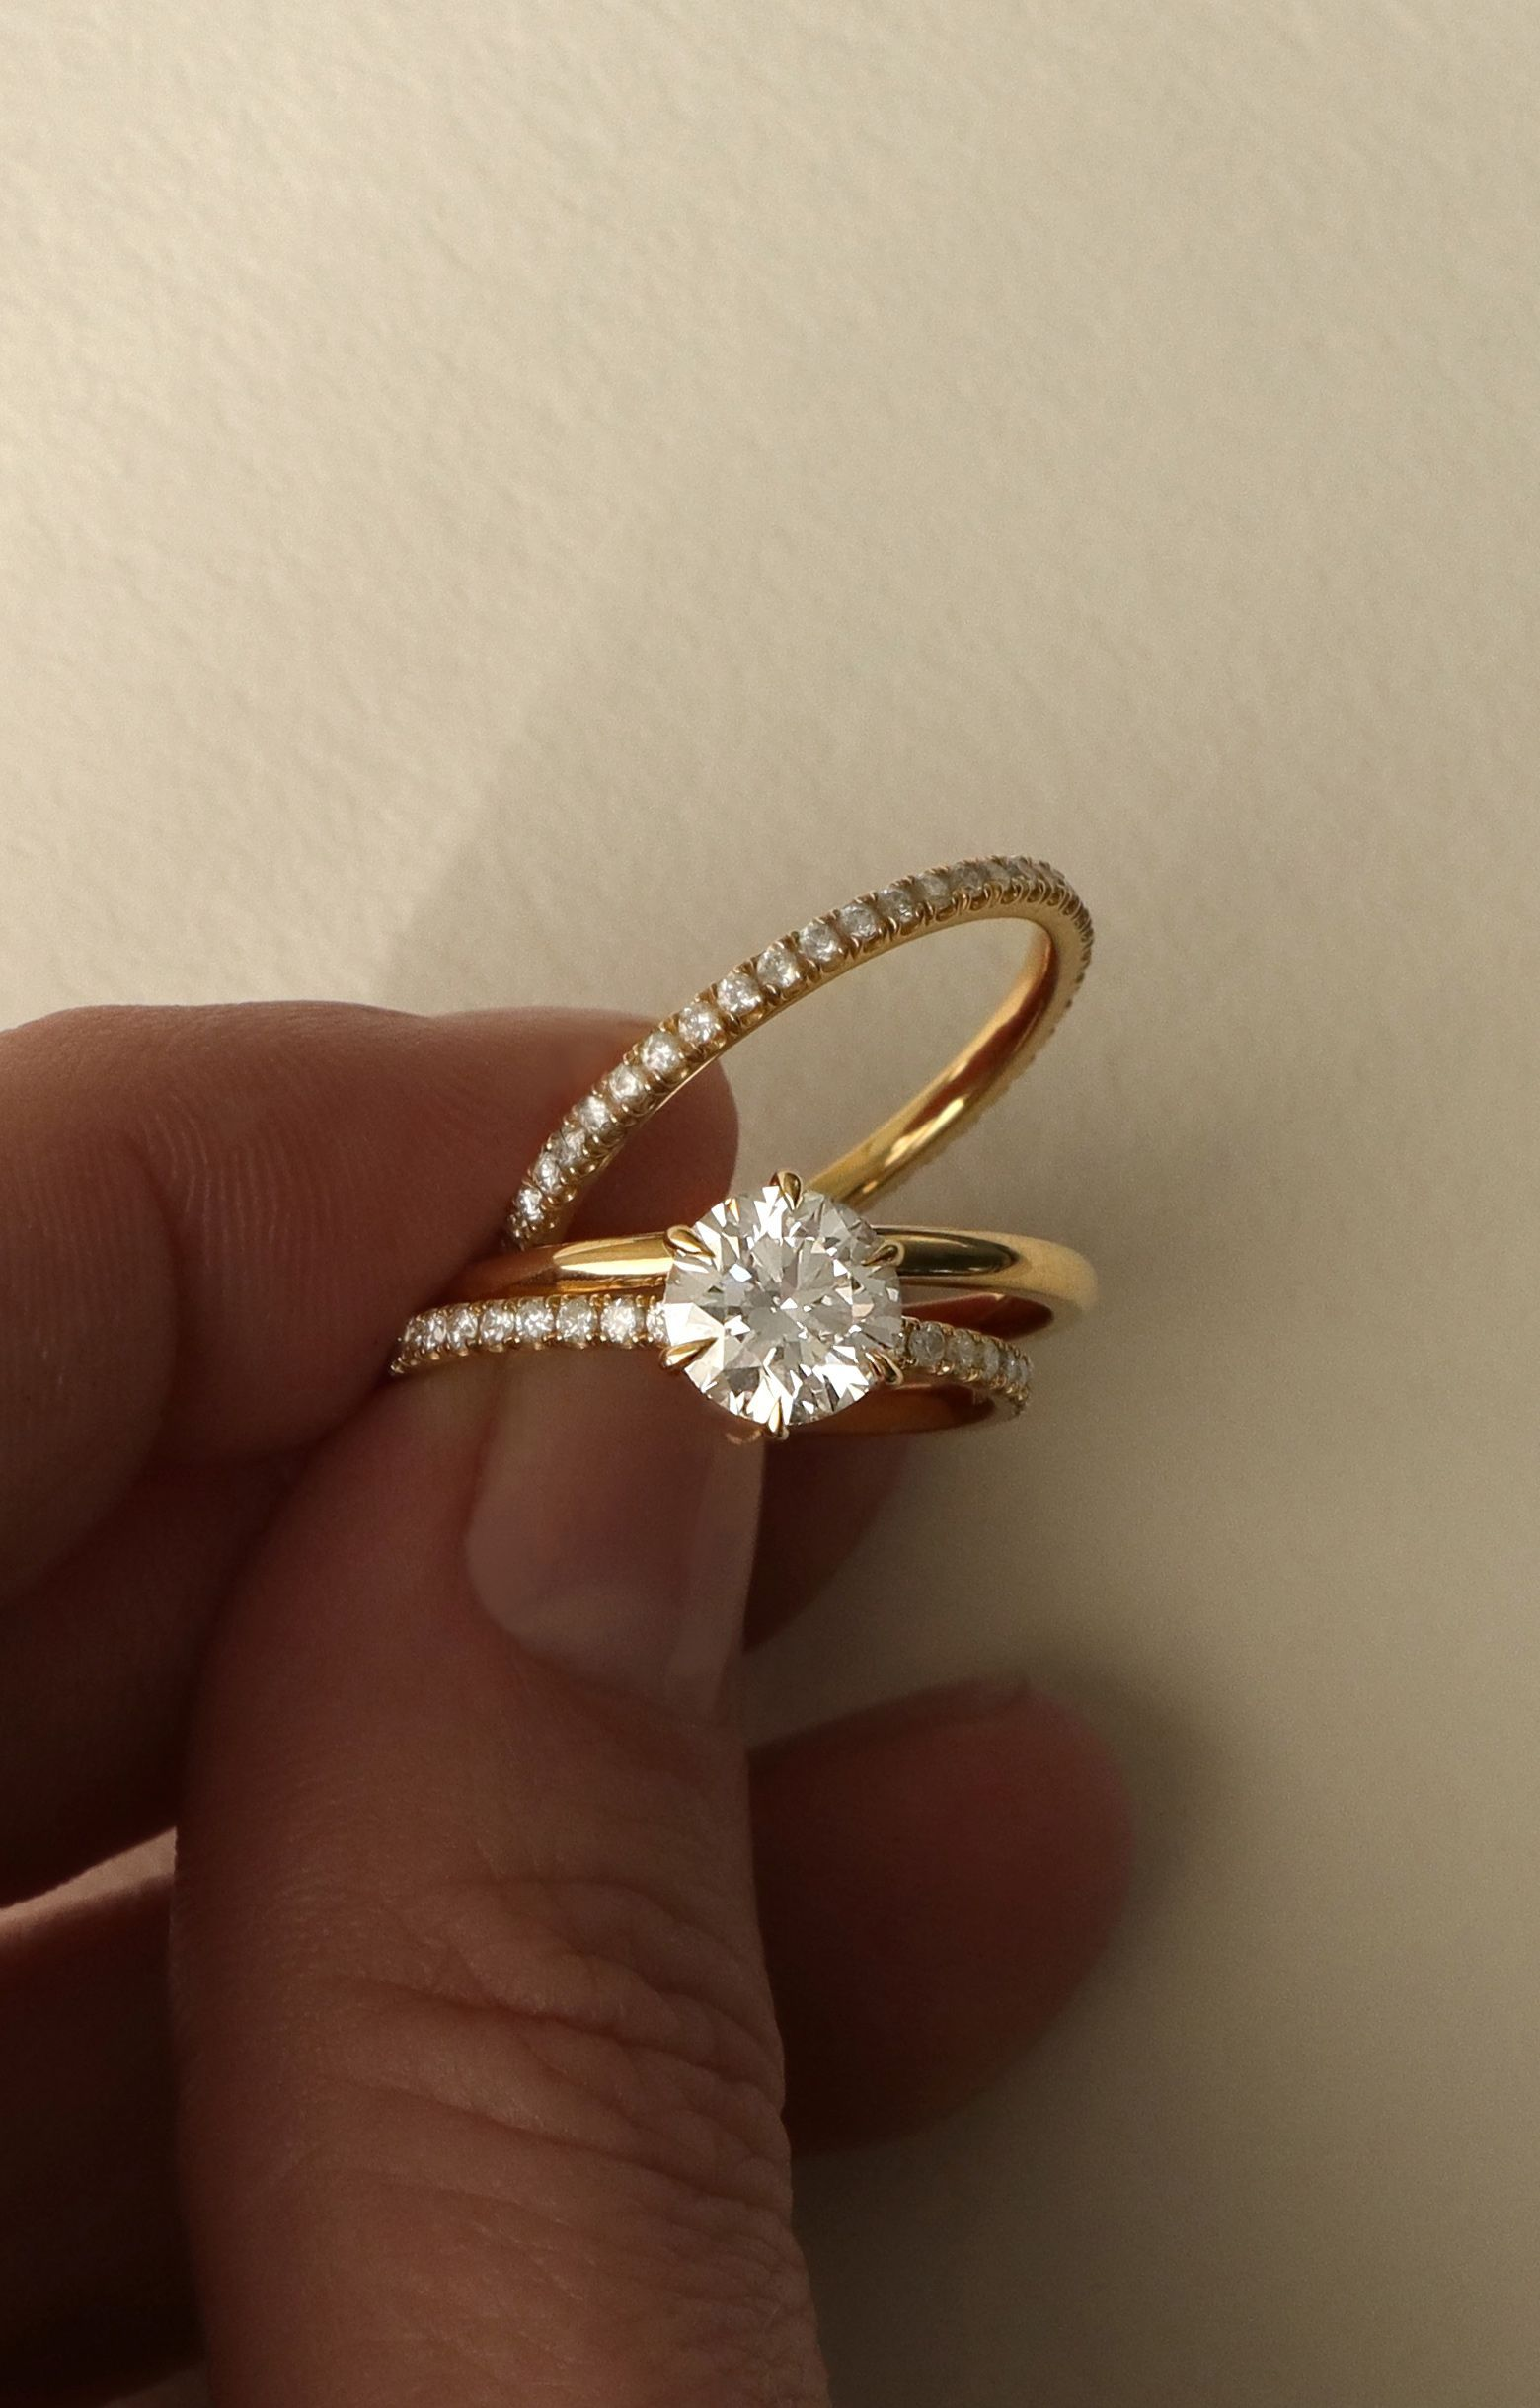 Marvelous 100 Simple Engagement Rings For The Timeless Bride Https Fazhion Co 2017 07 1 Simple Engagement Rings Wedding Rings Solitaire Wedding Rings Simple